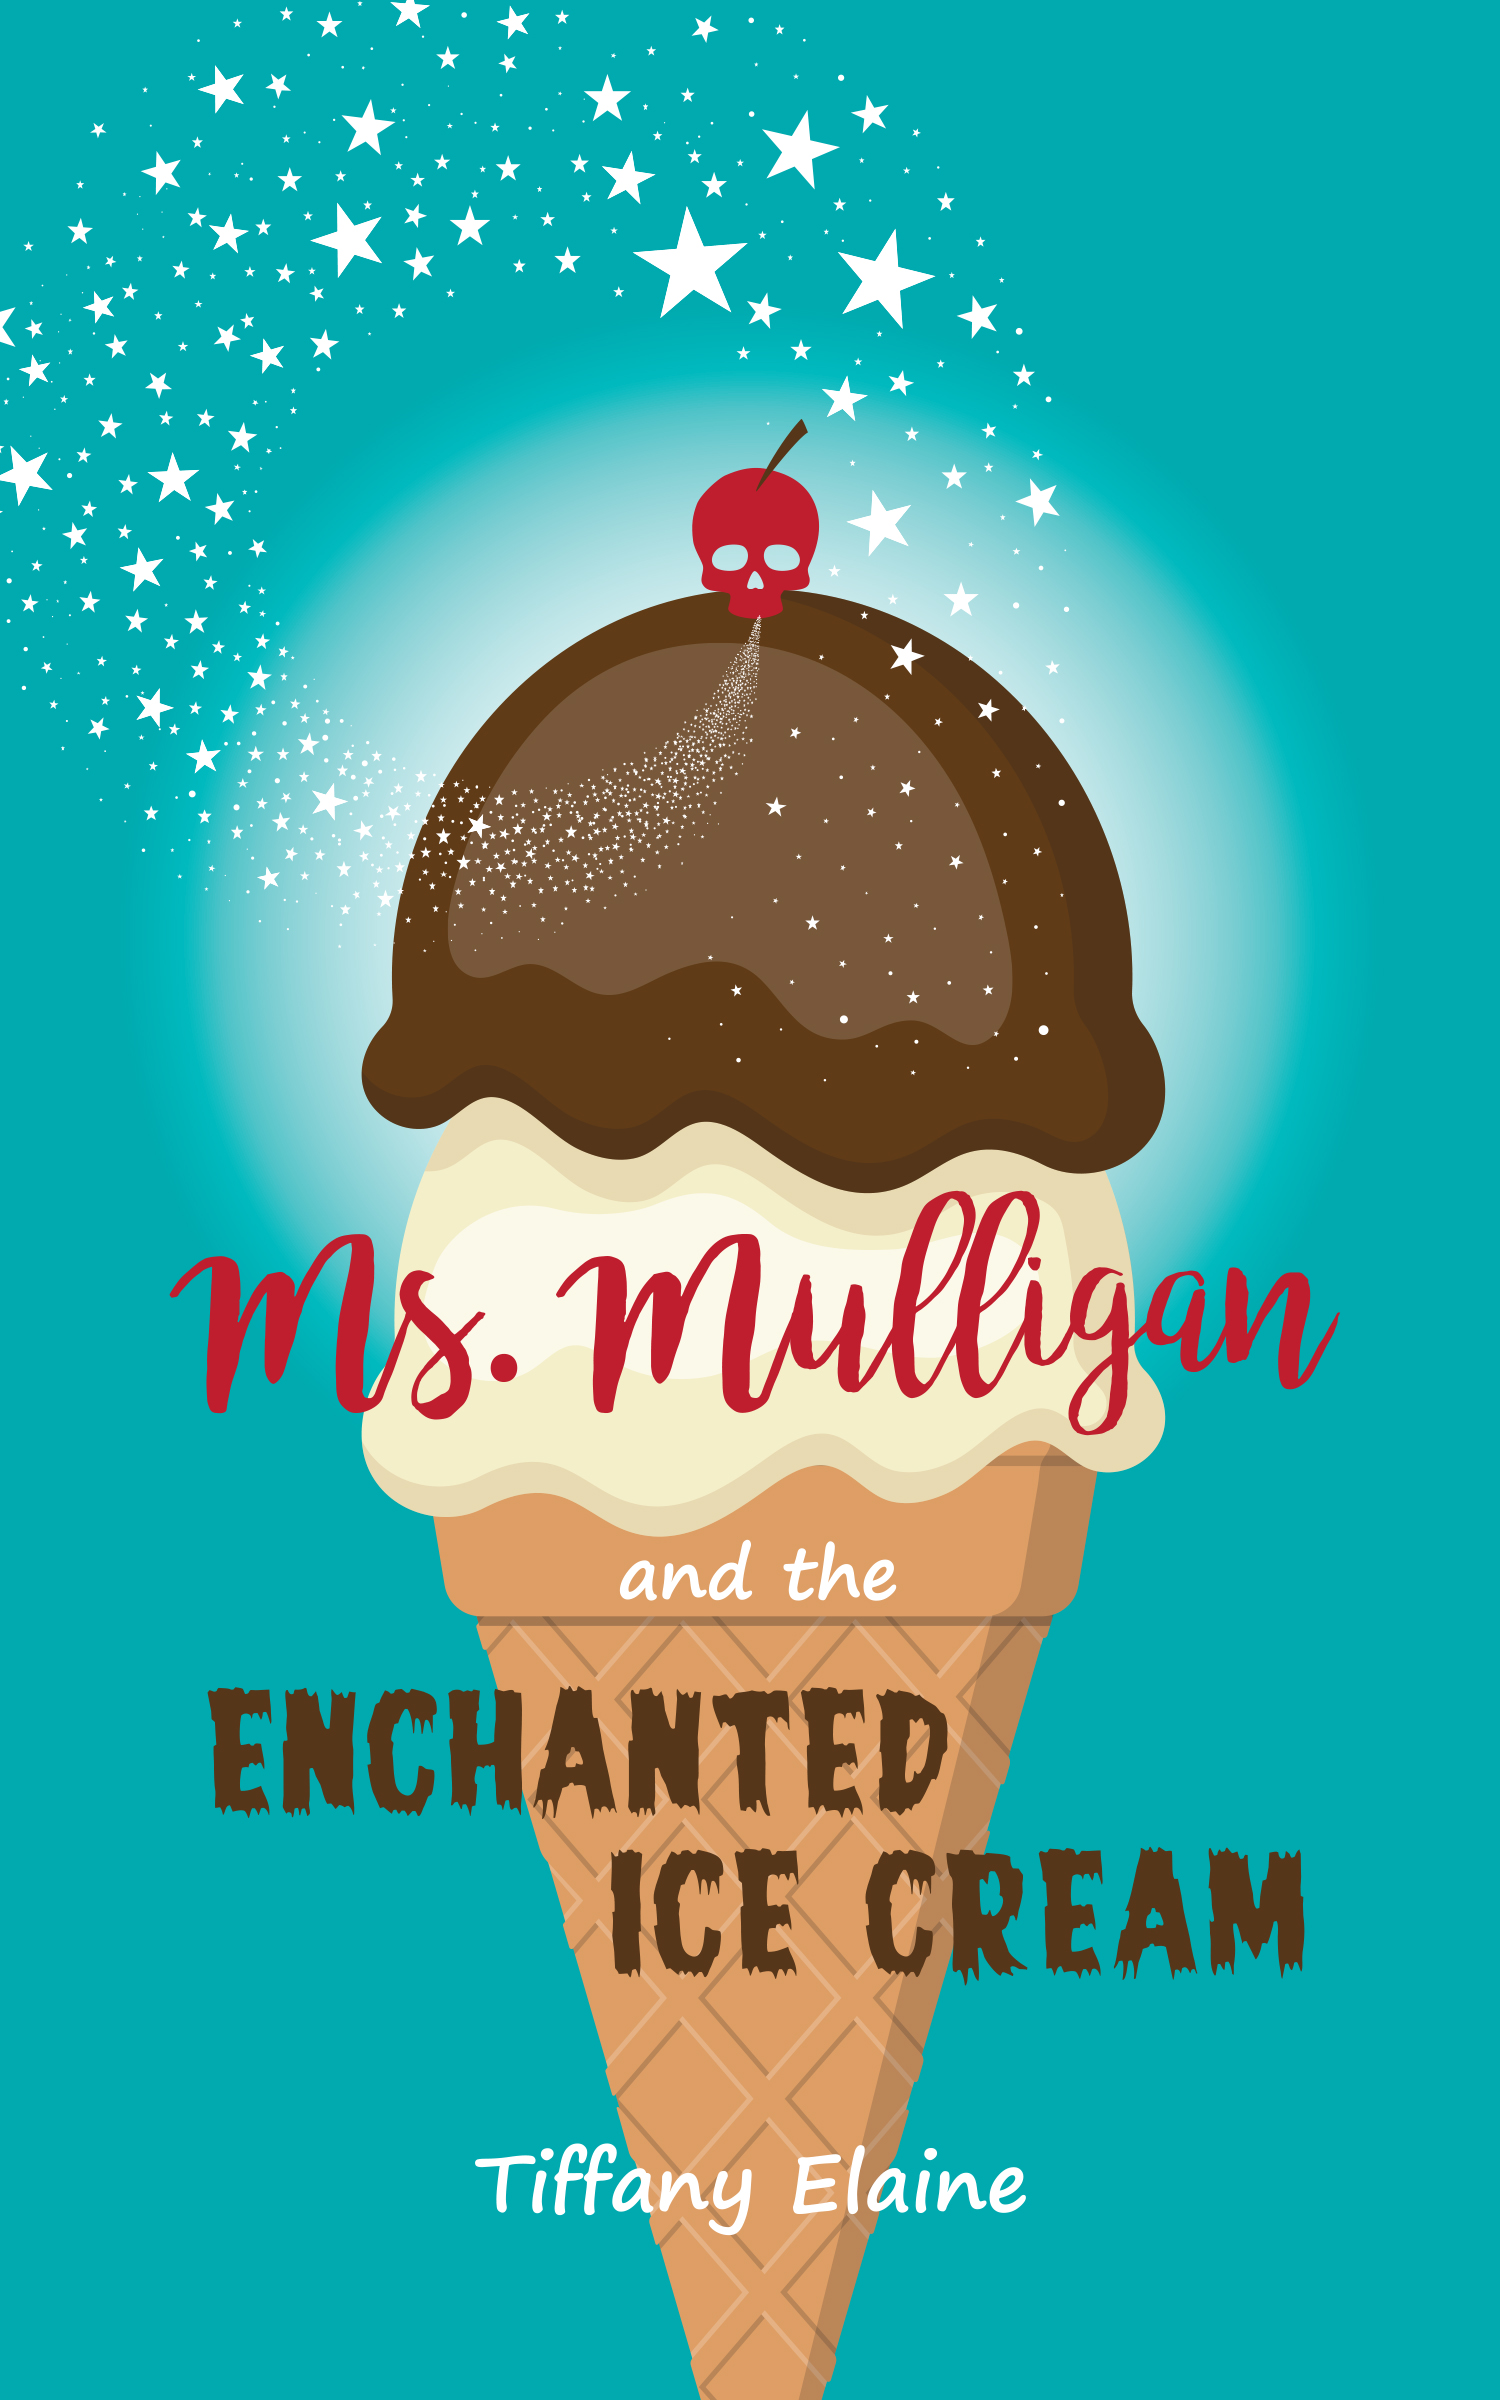 MS. MULLIGAN & THE ENCHANTED ICE CREAM